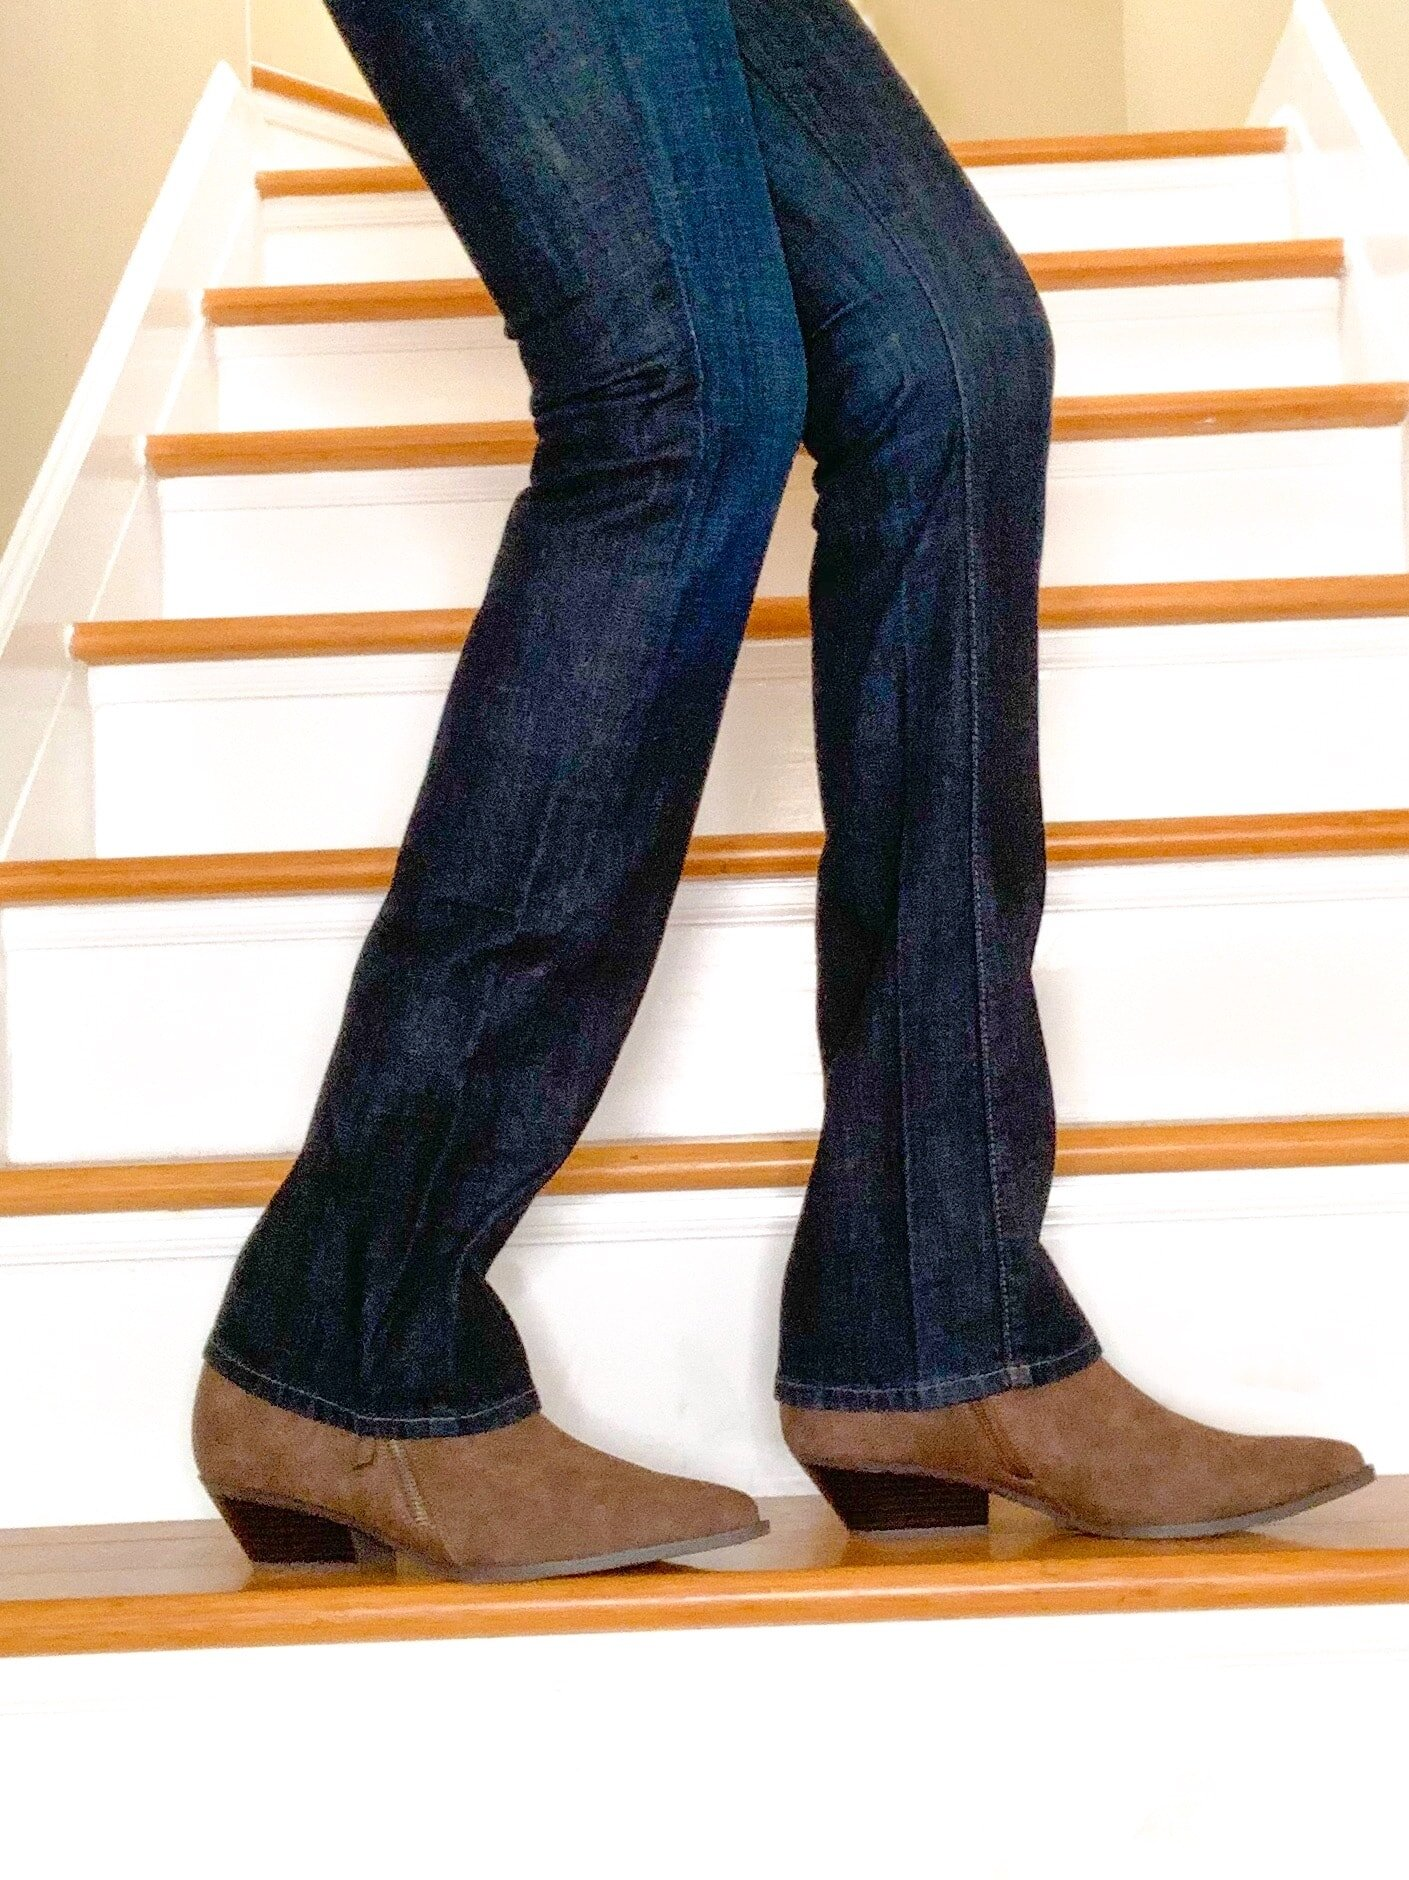 bootcut jeans and low boots-min.jpg